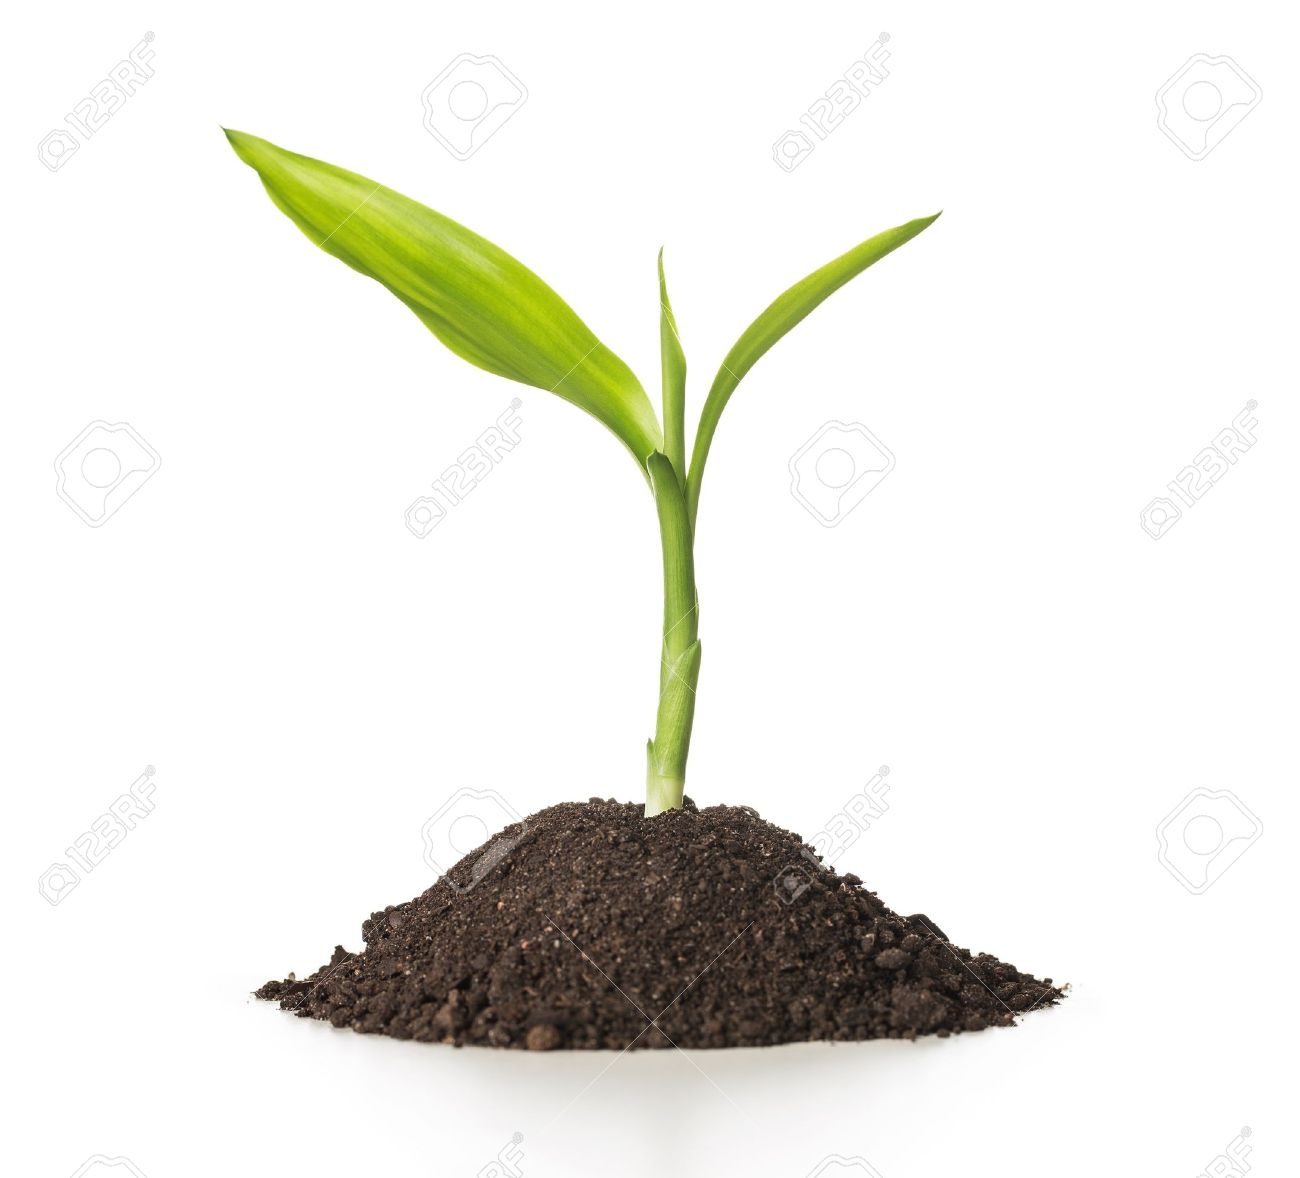 Image result for small plant